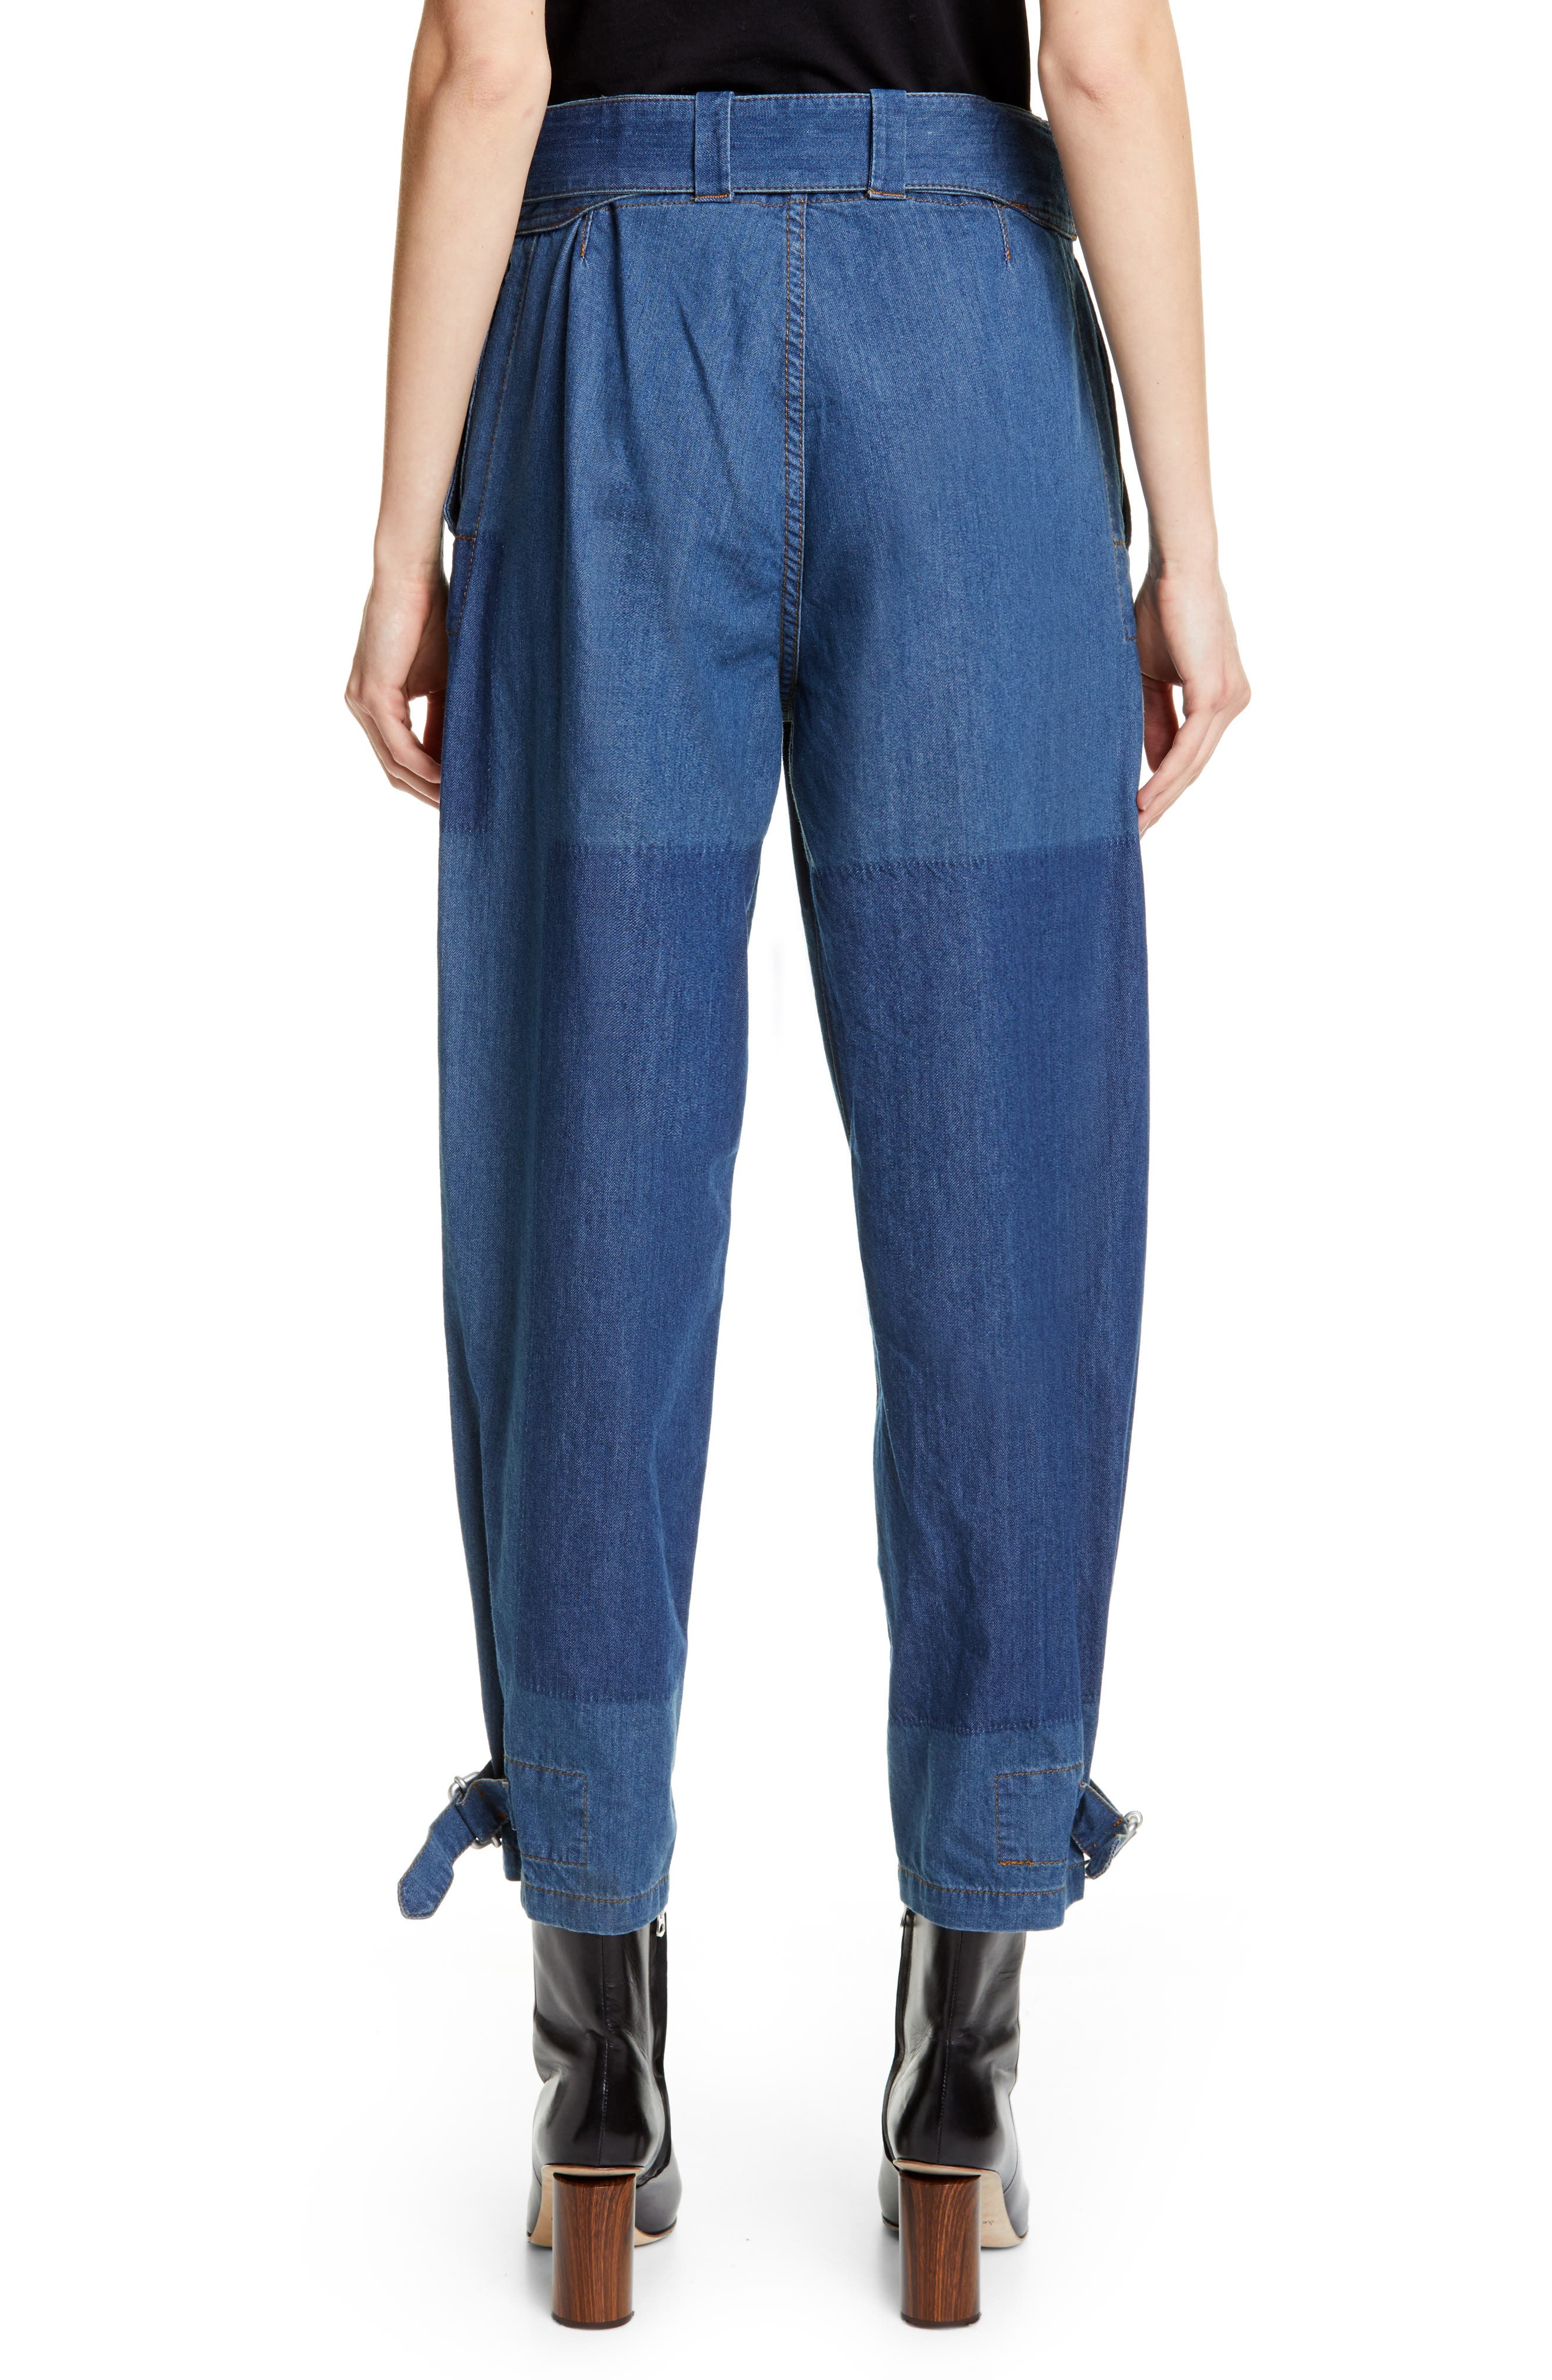 JW ANDERSON,                             Fold Front Jeans,                             Alternate thumbnail 2, color,                             MID BLUE